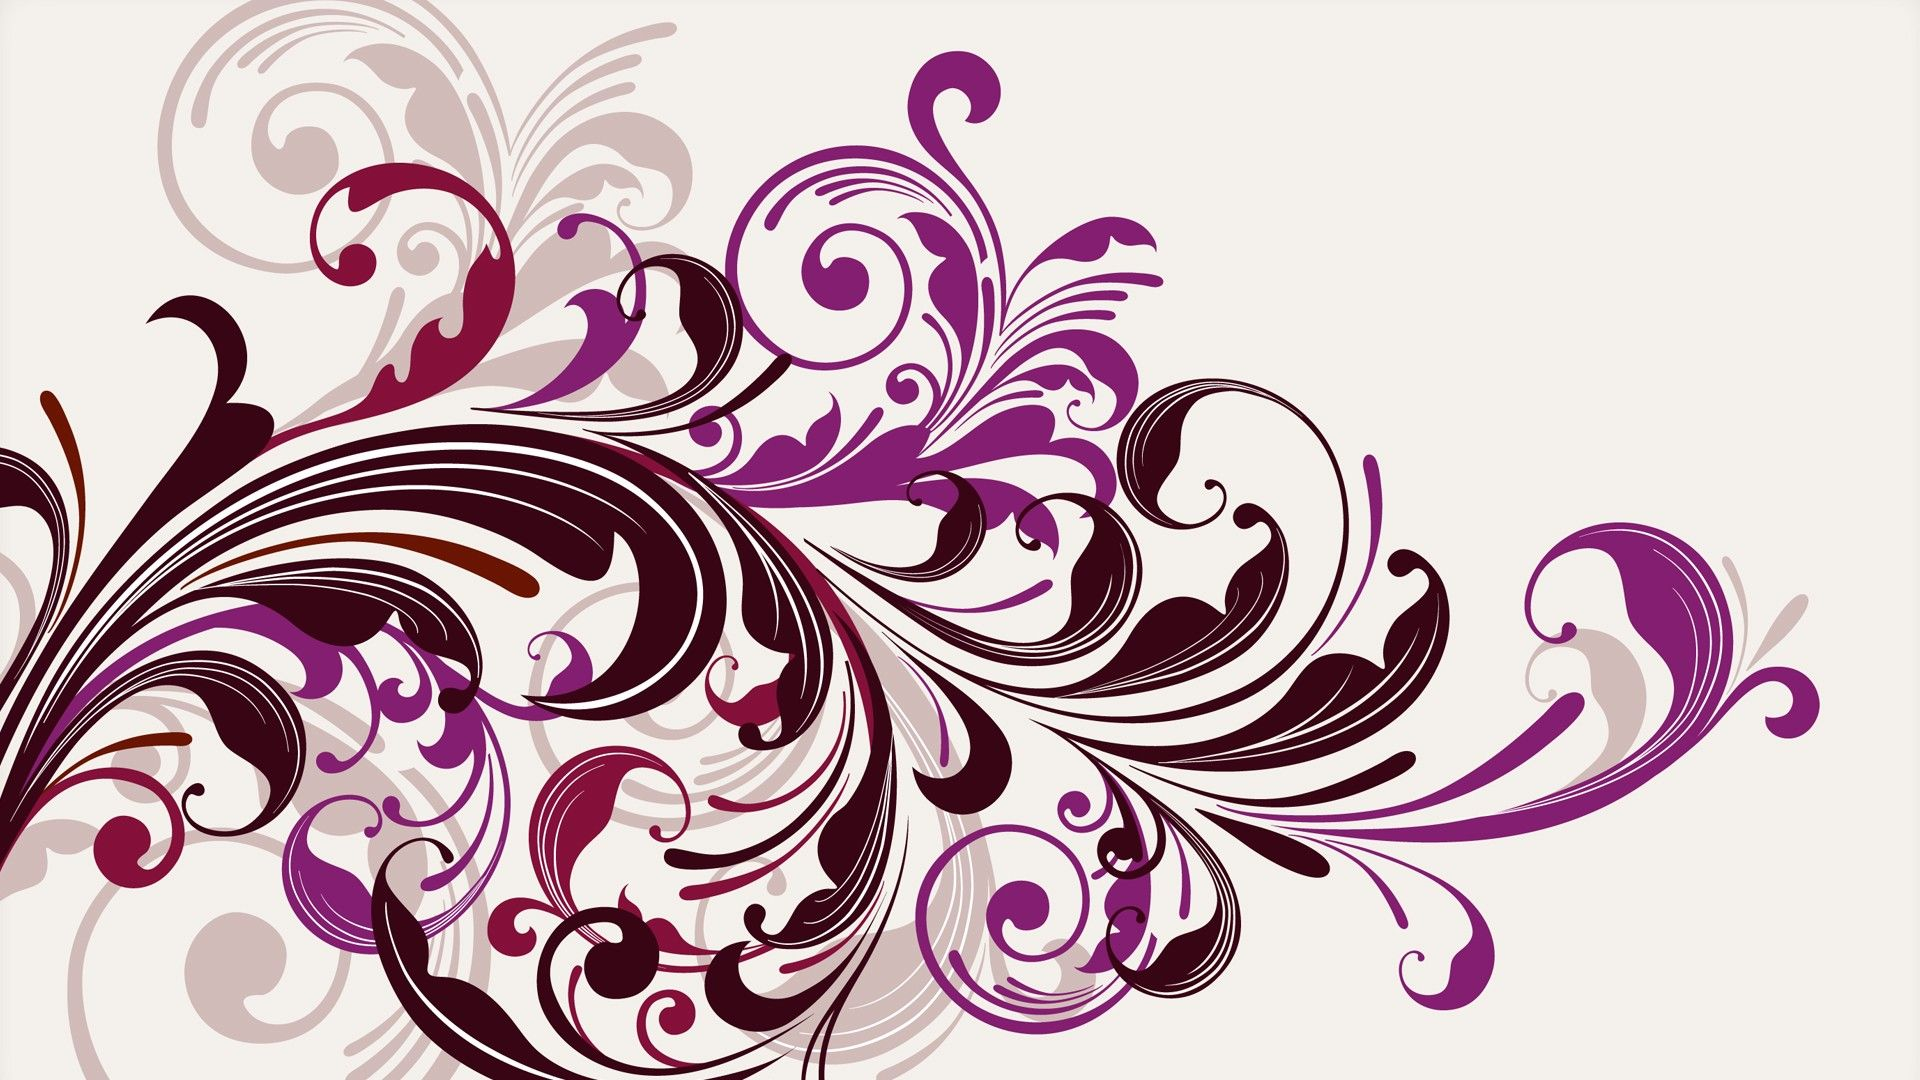 Purple And White download free wallpaper image search